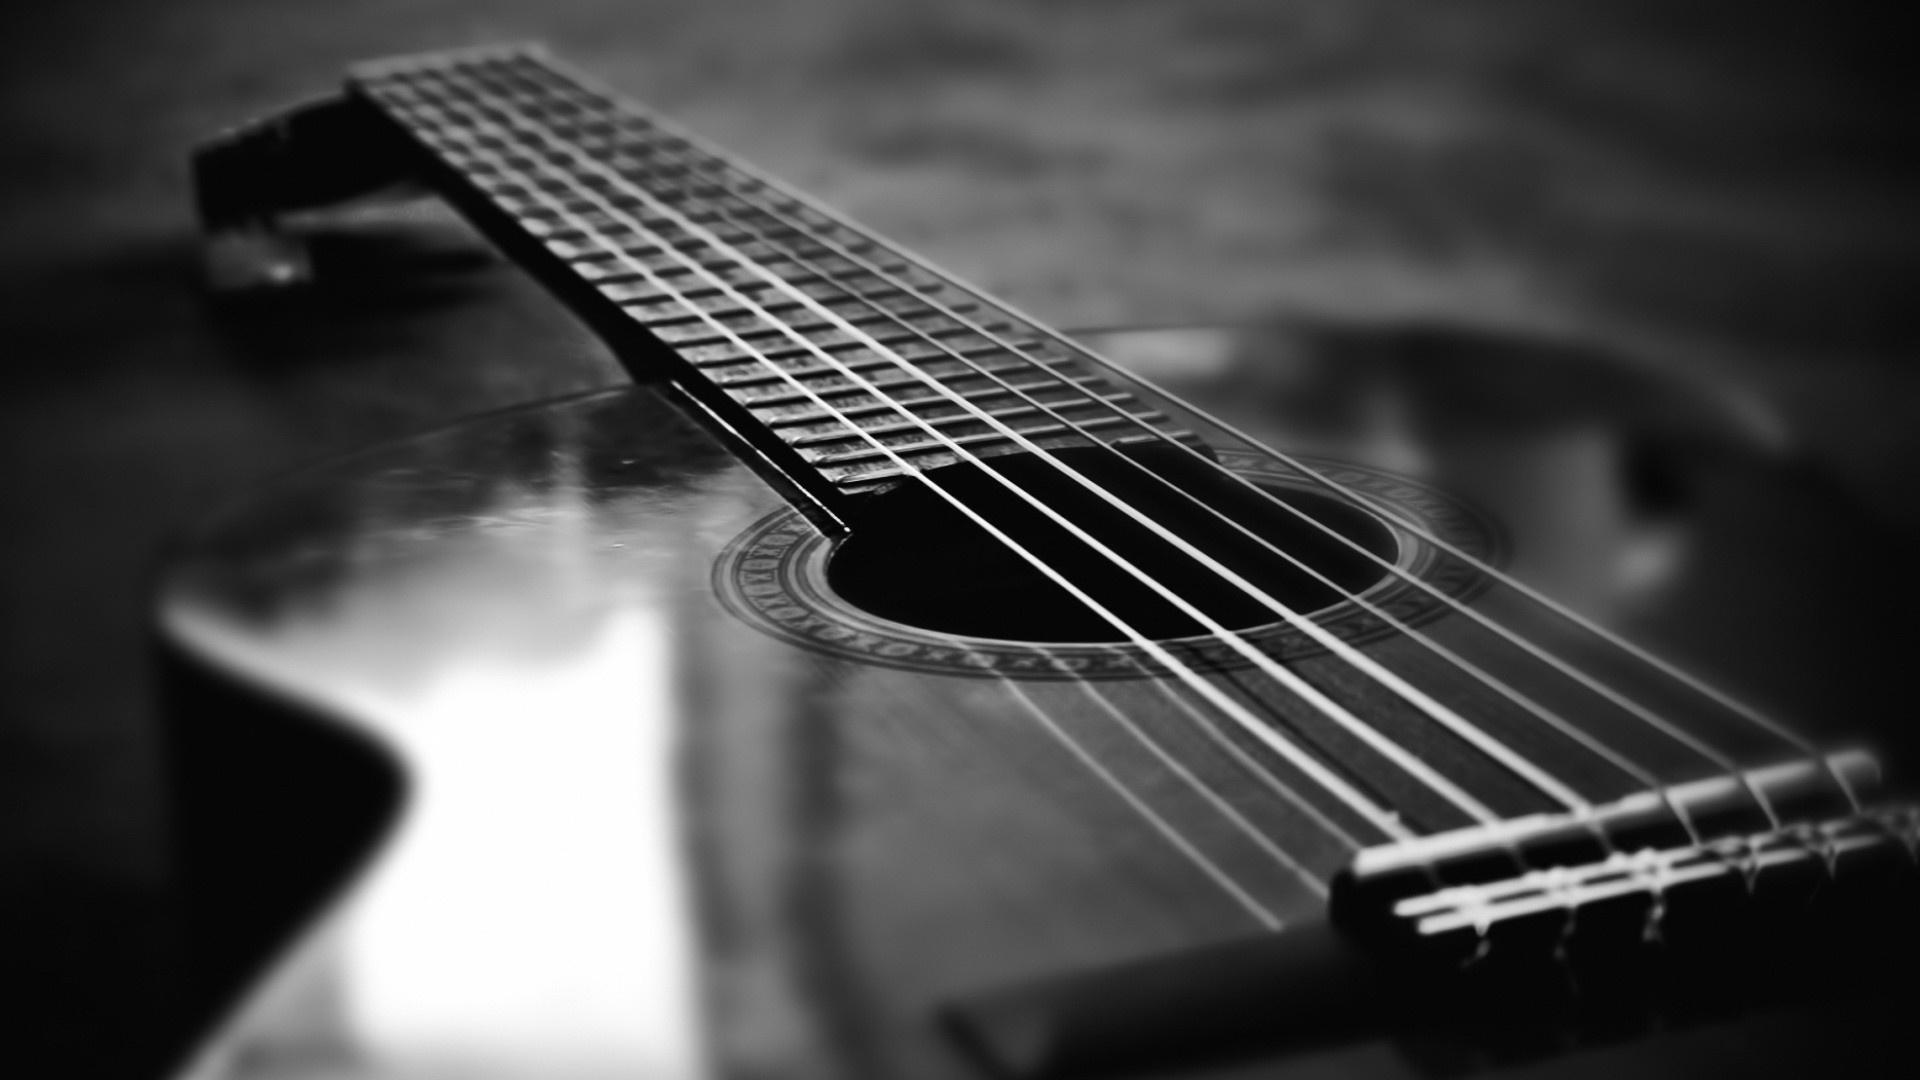 Monochrome Guitar Desktop Wallpaper 58780 1920x1080 px